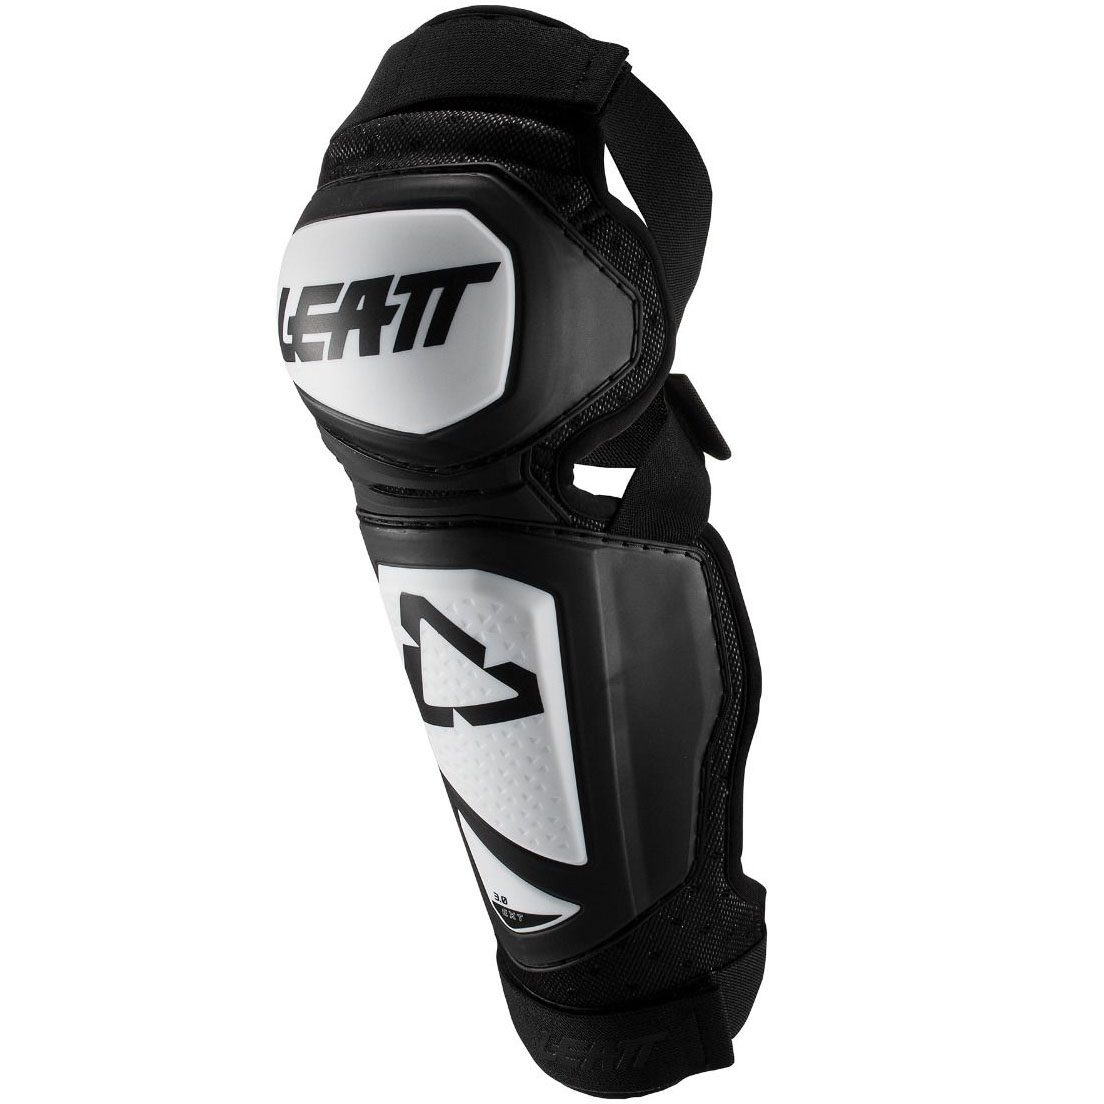 Leatt - 2019 3.0 EXT Knee & Shin Guard White/Black защита колен, бело-черная